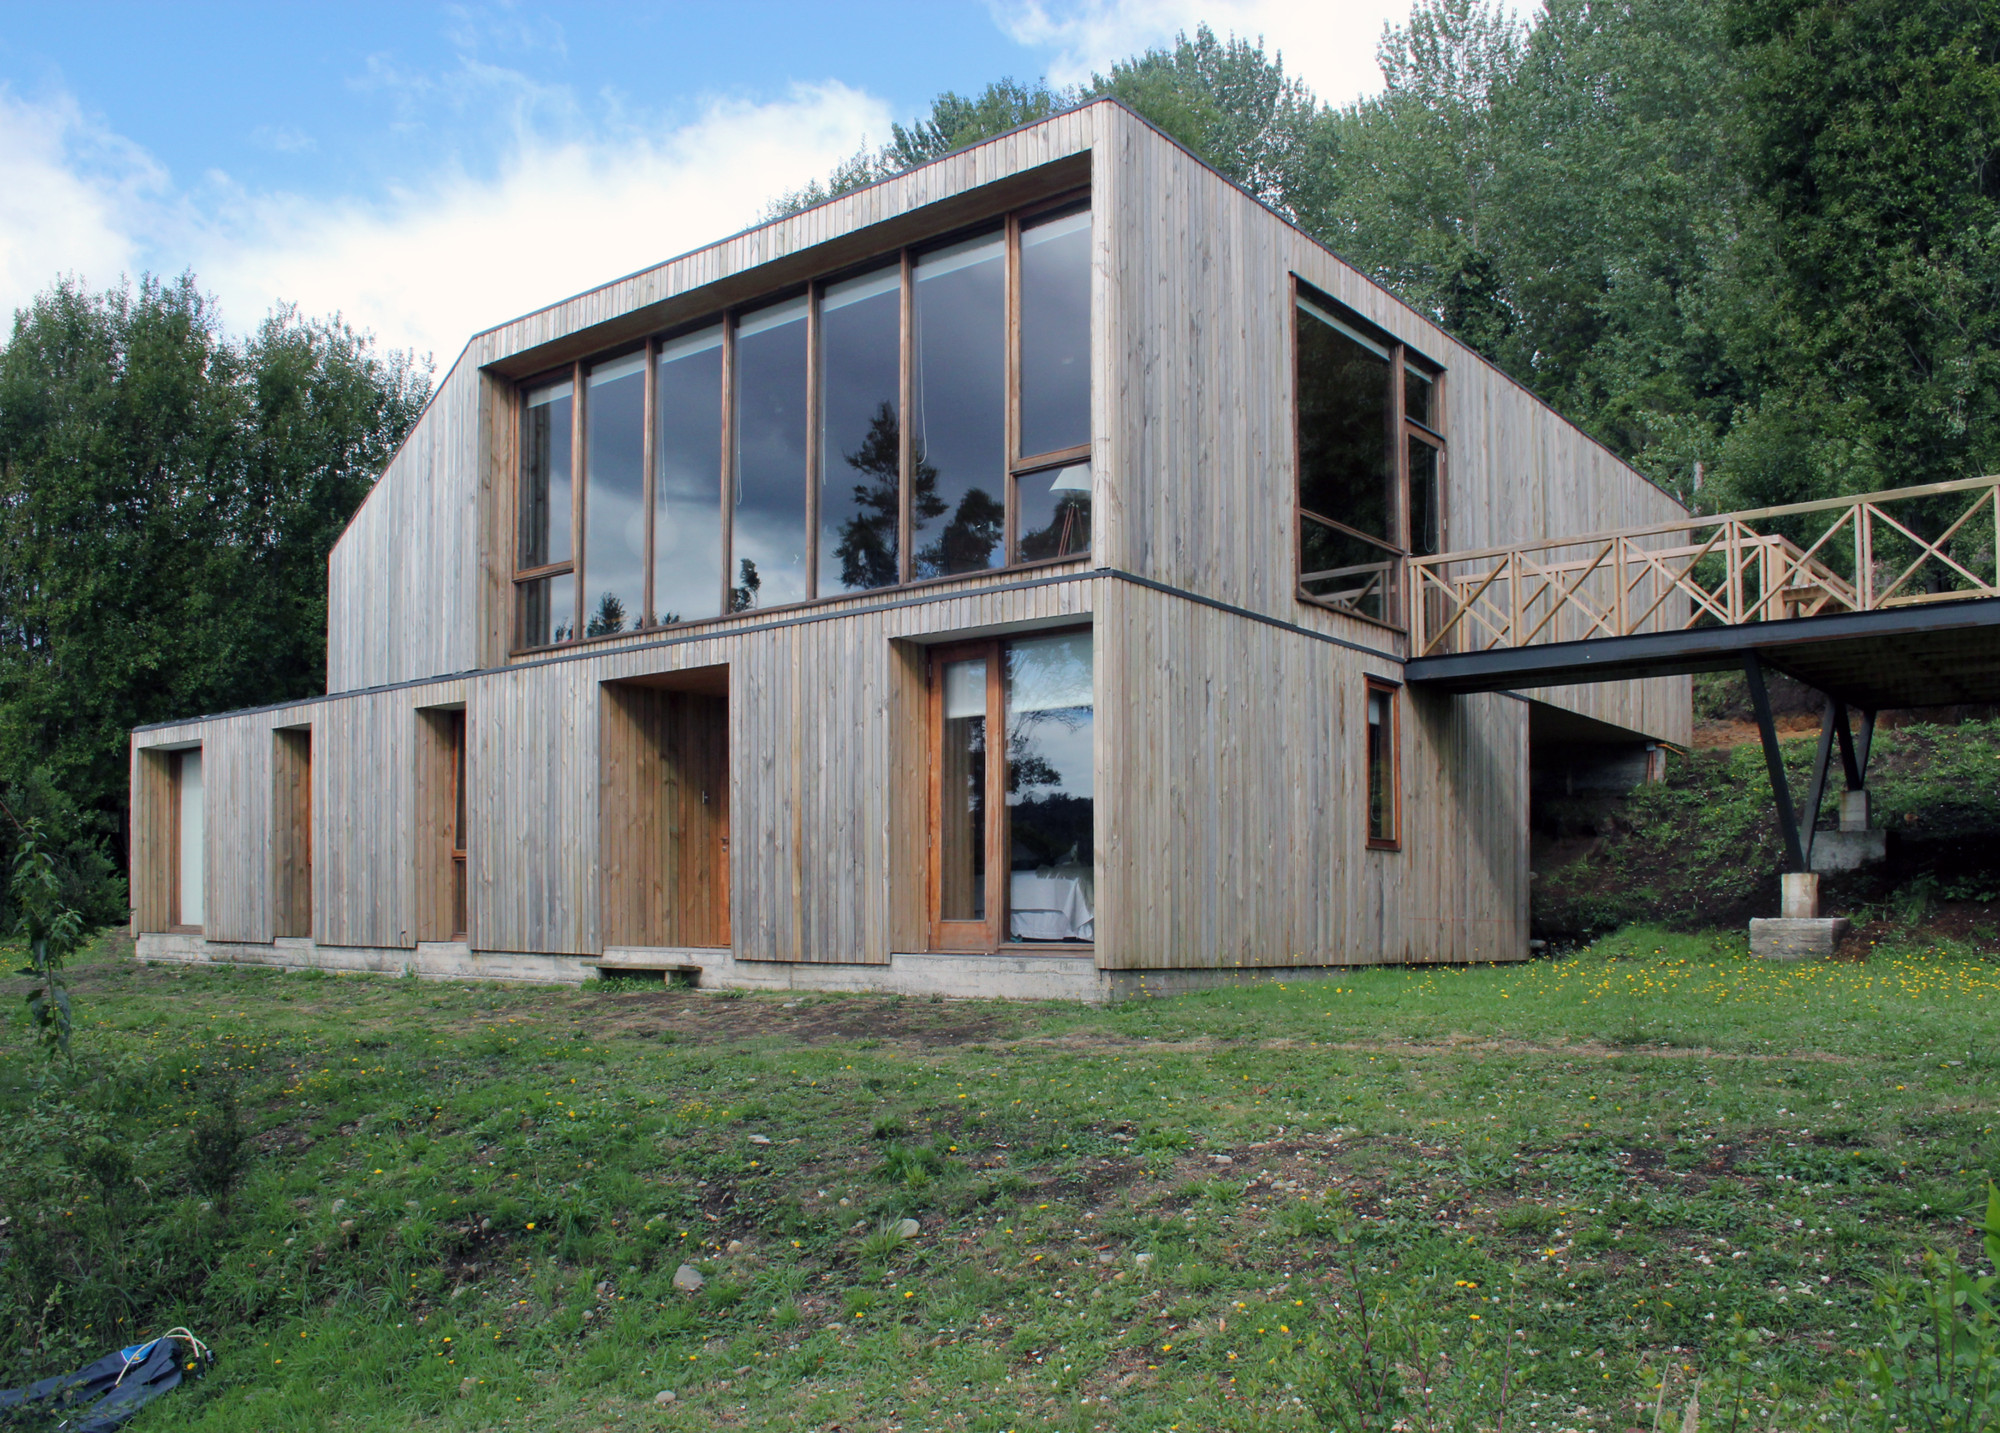 Casa Rupanco / duval+vives arquitectos, Courtesy of d+vA | Duval + Vives Arquitectos